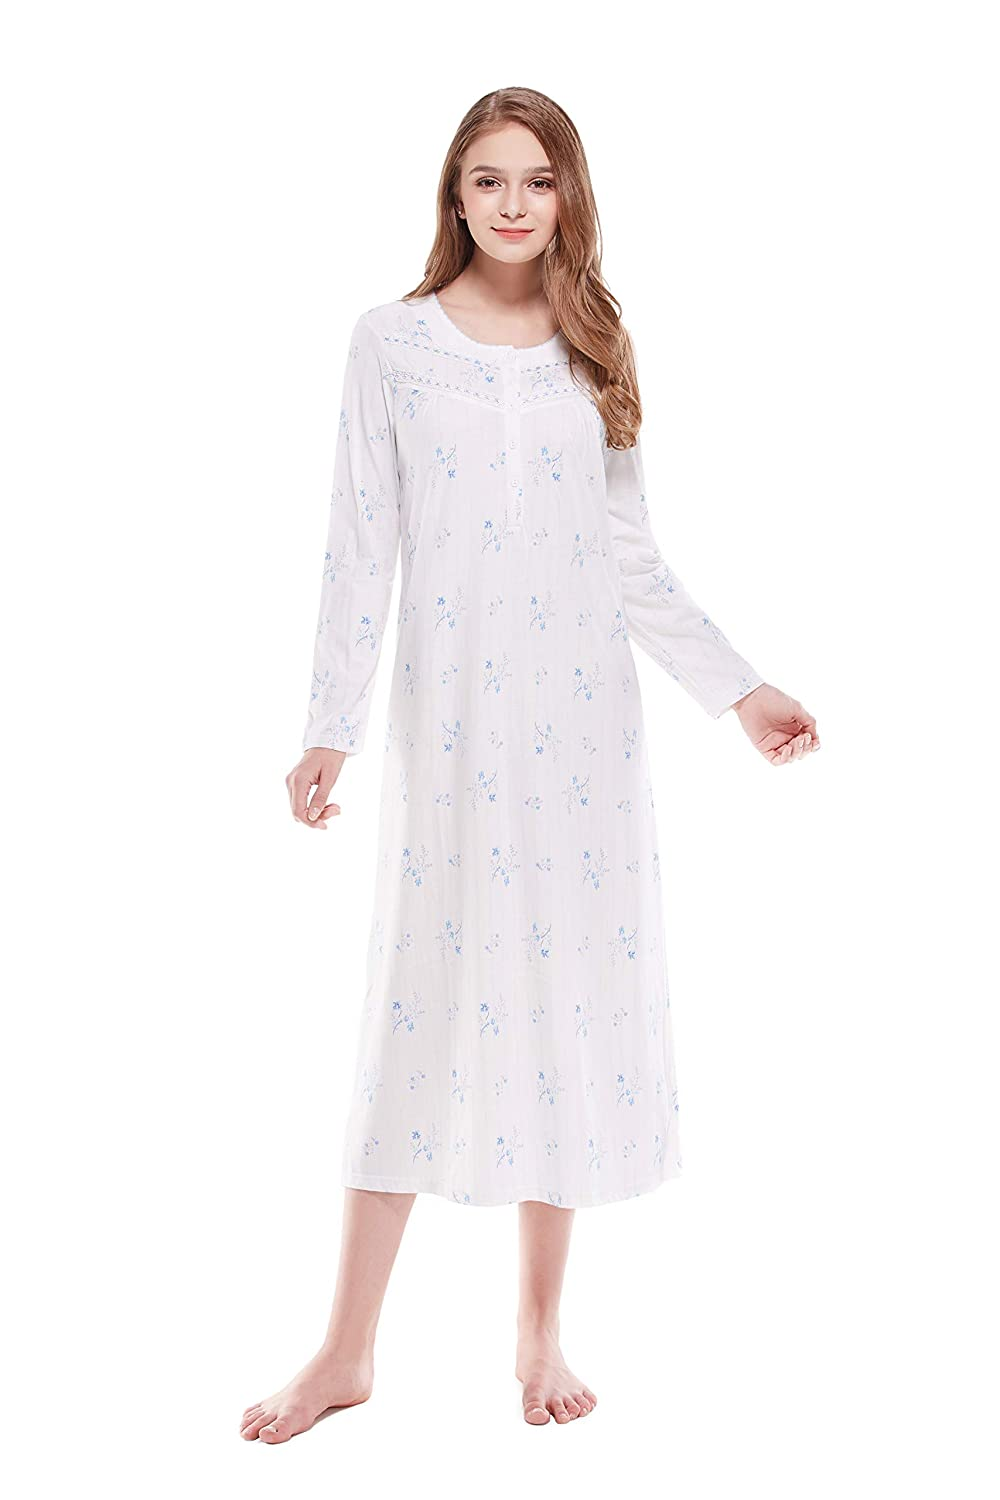 Keyocean Nightgowns for Women 100% Cotton Blue Floral Print Long Sleeves Long Nightgowns White K18015